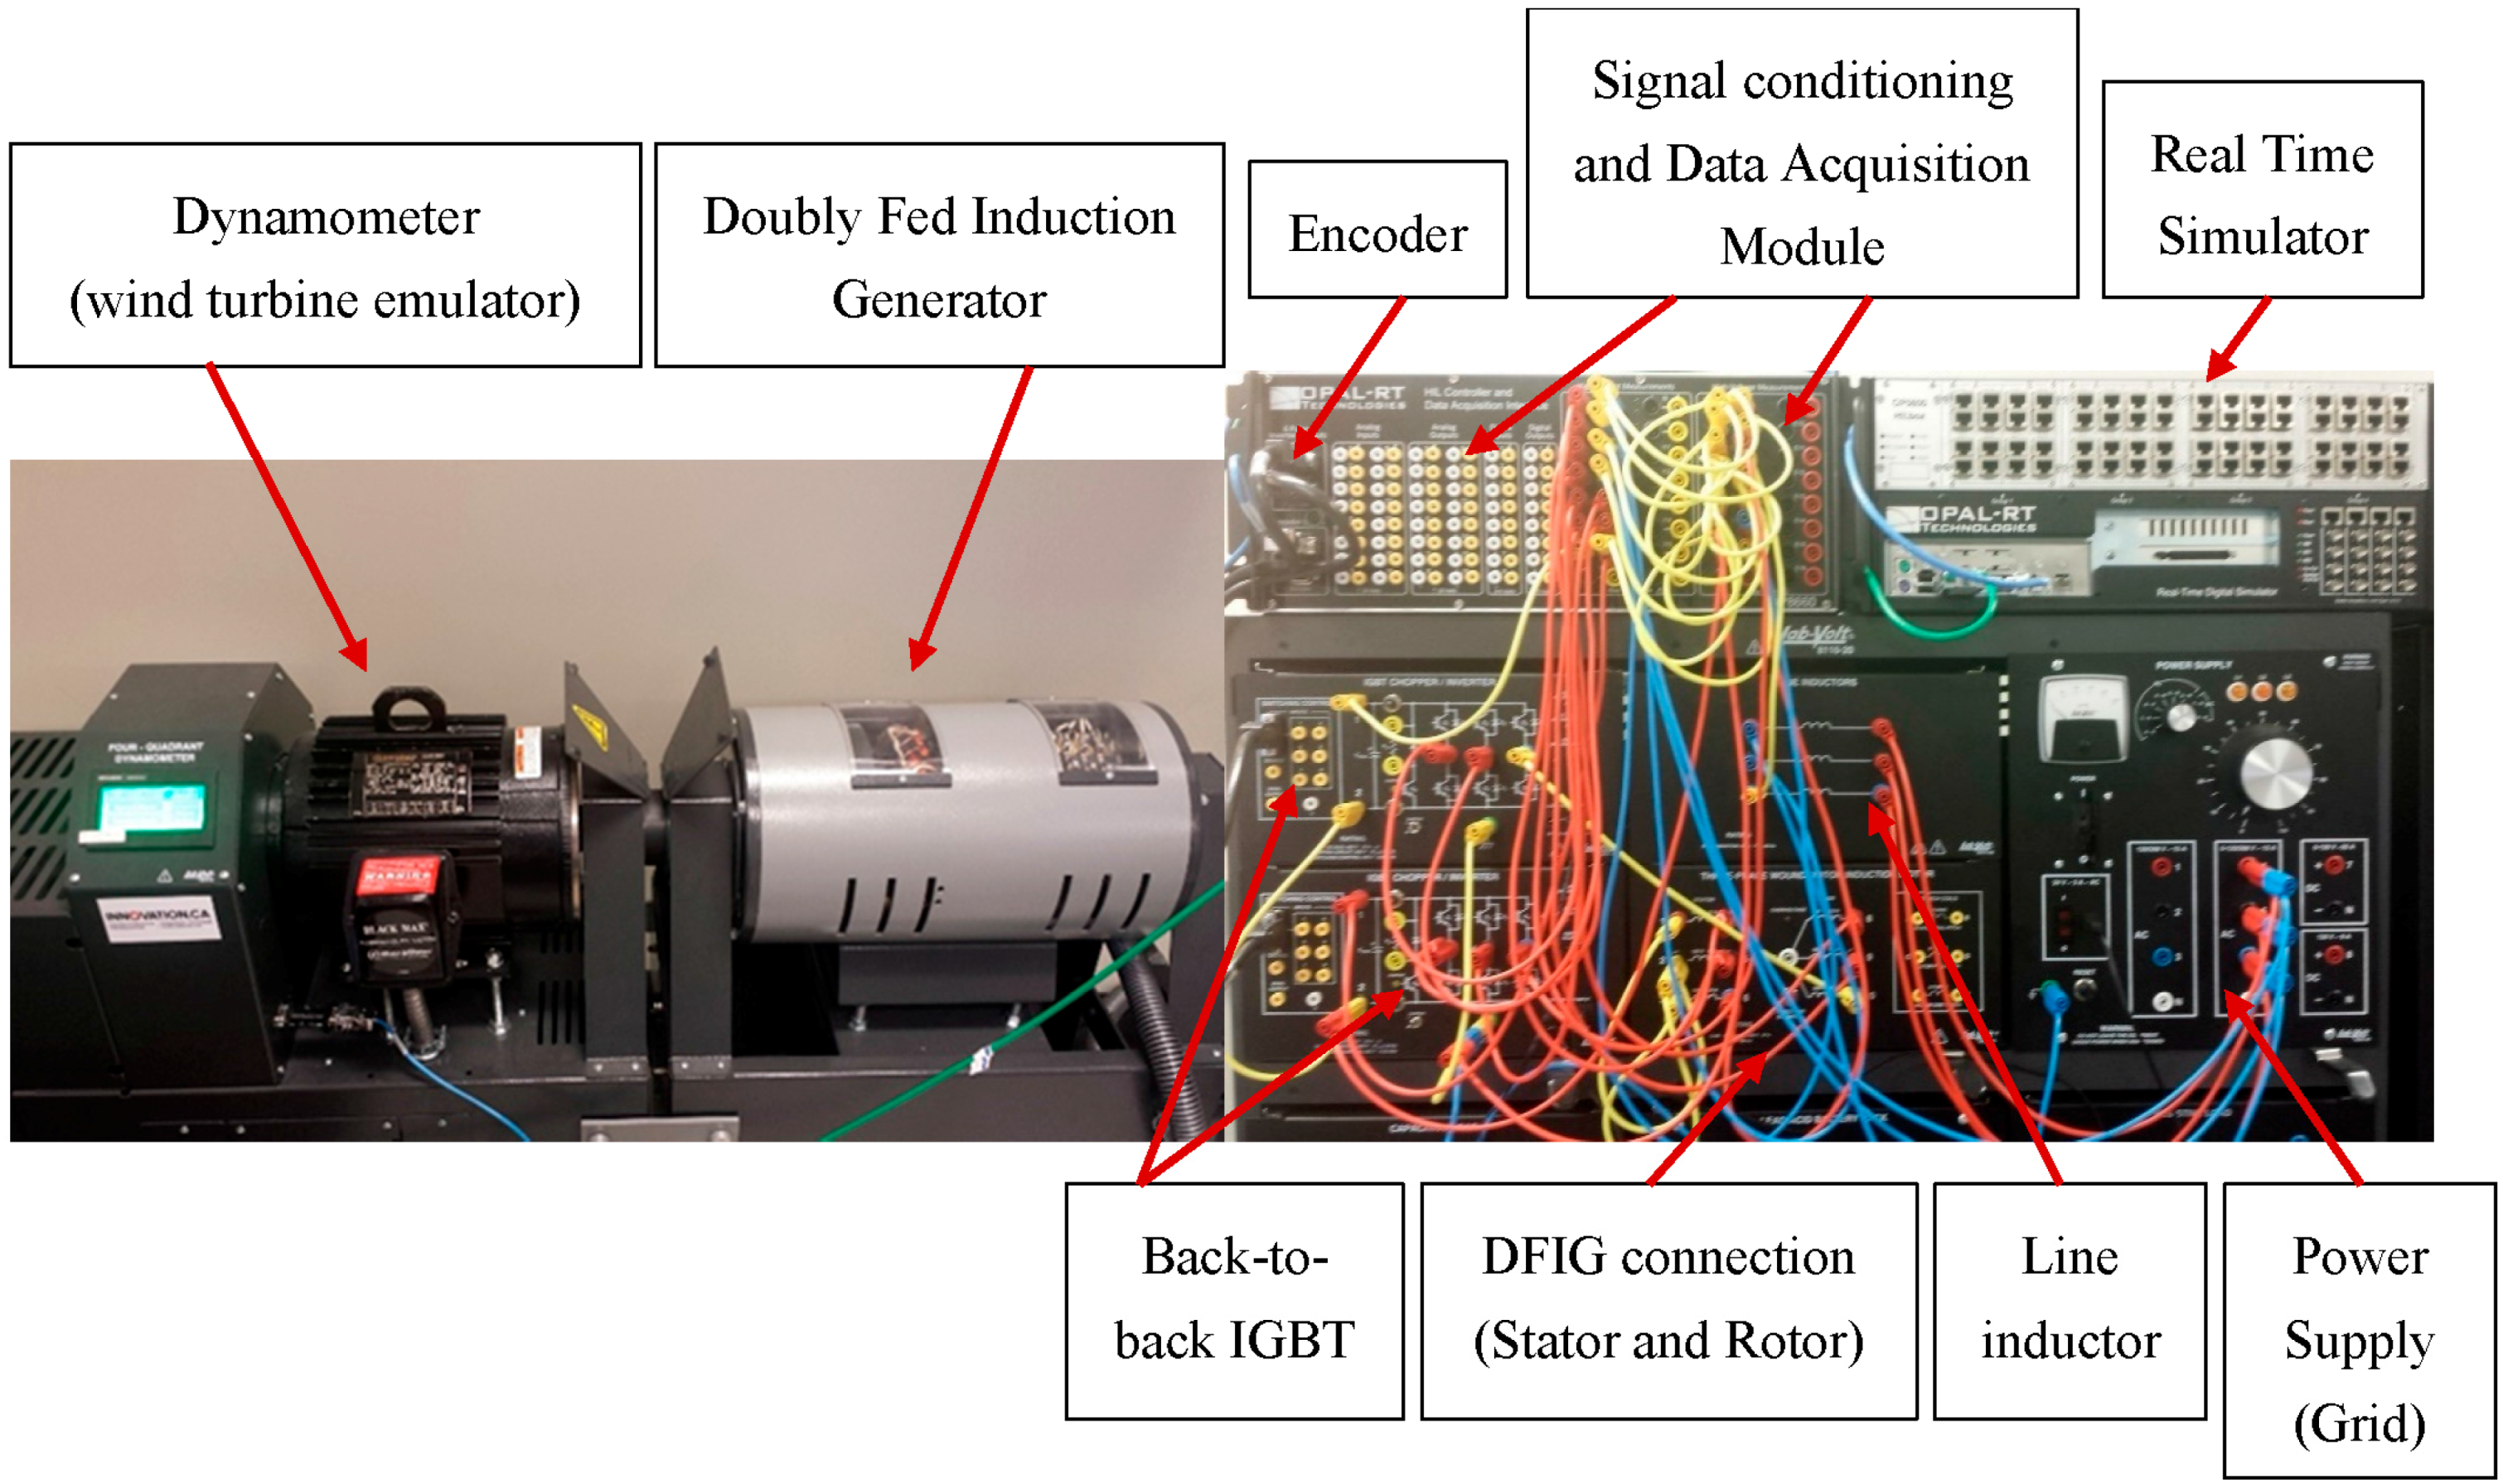 Energies Free Full Text Real Time Control Of Active And Reactive Controllers For A Doublyfed Wind Power System National Instruments No